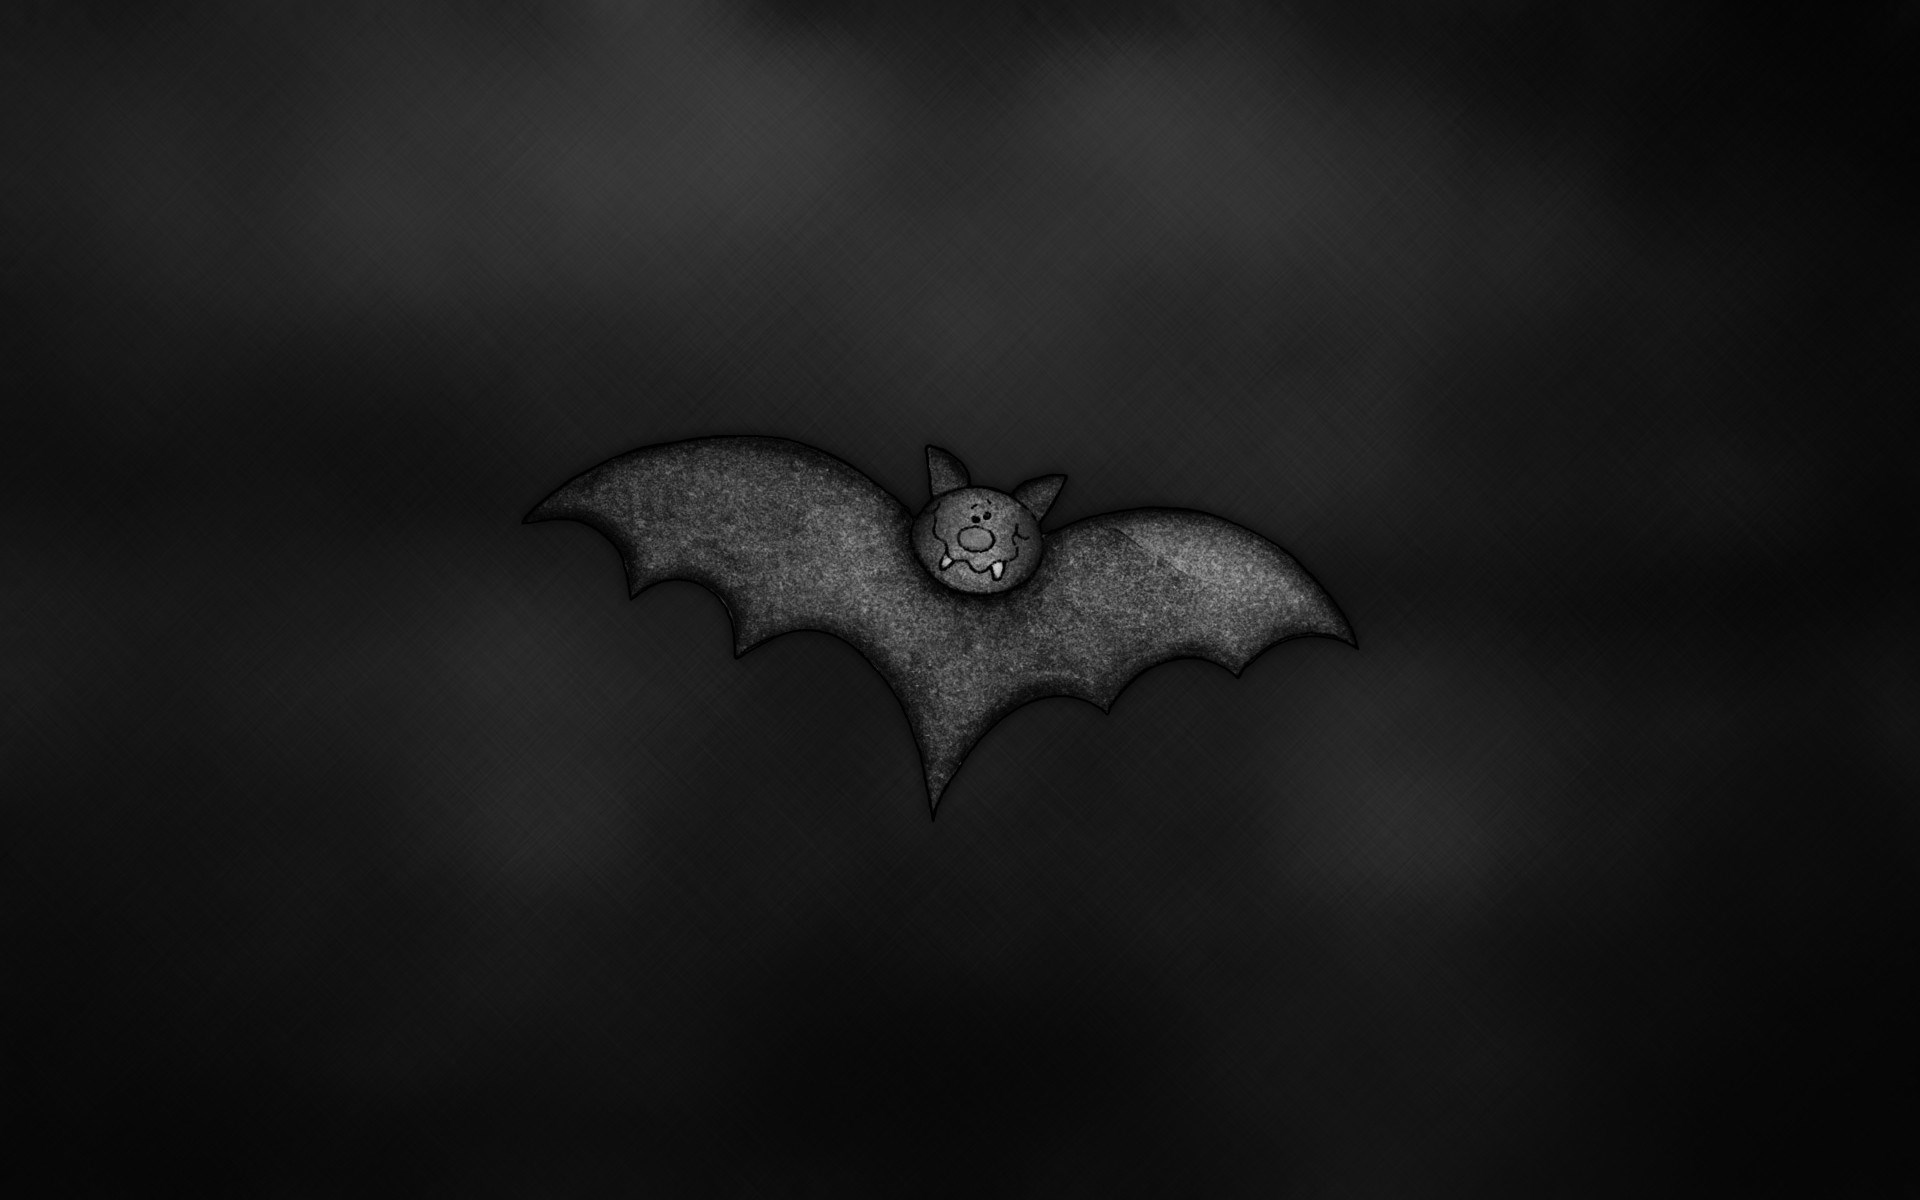 Bat Art Funny